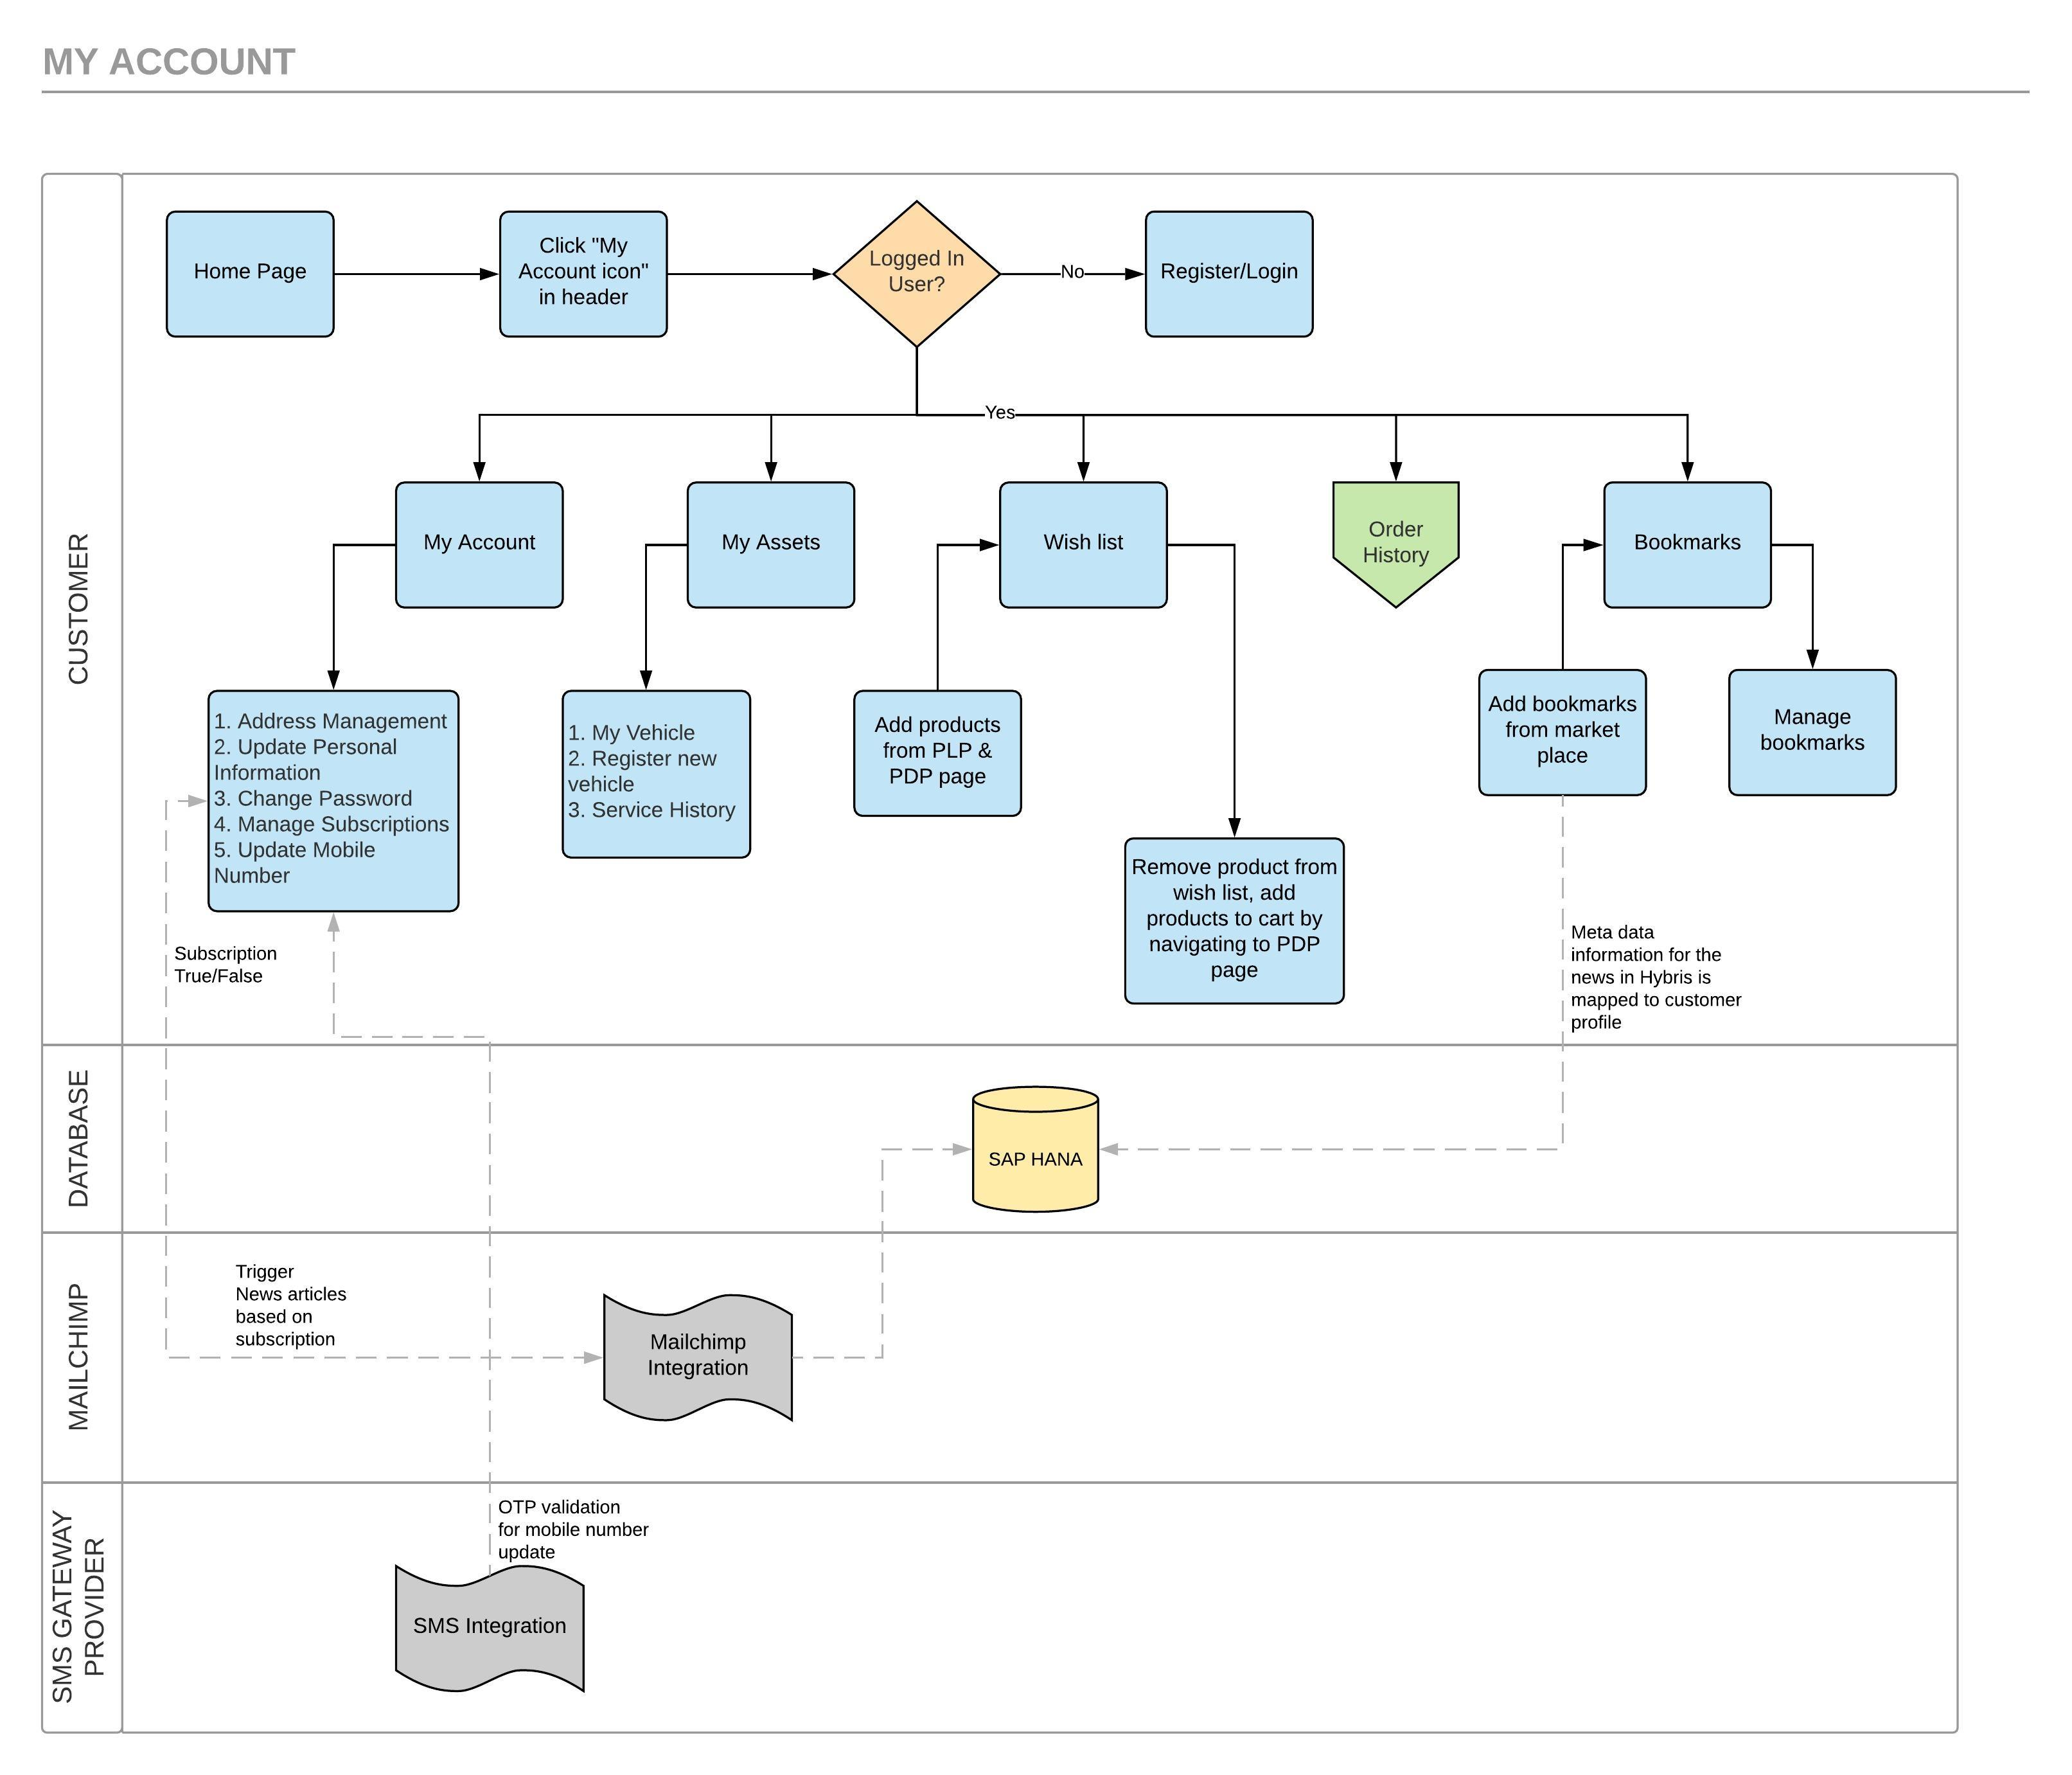 create process flow diagrams based on the requirement by ananthu86  fiverr